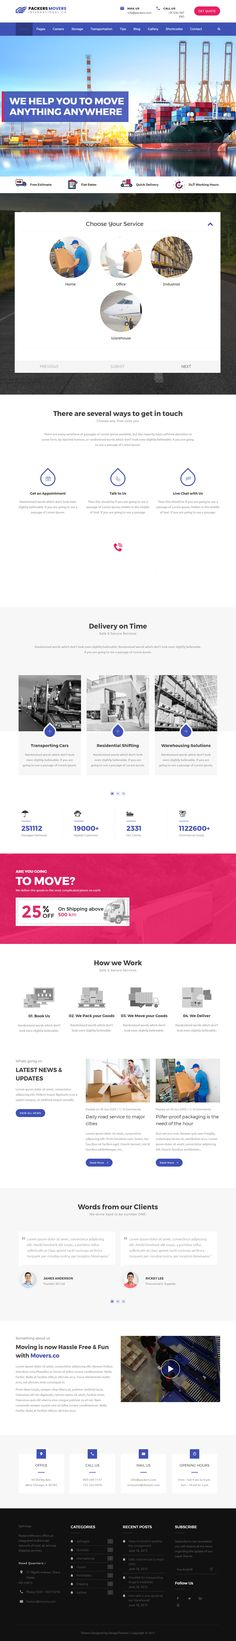 Packers & Movers is Premium Responsive Retina #WordPressTheme. Visual Composer. WooCommerce. If you like this #Transportation Theme visit our handpicked list of best #TransportationThemes at: http://www.responsivemiracle.com/best-wordpress-transportation-themes/